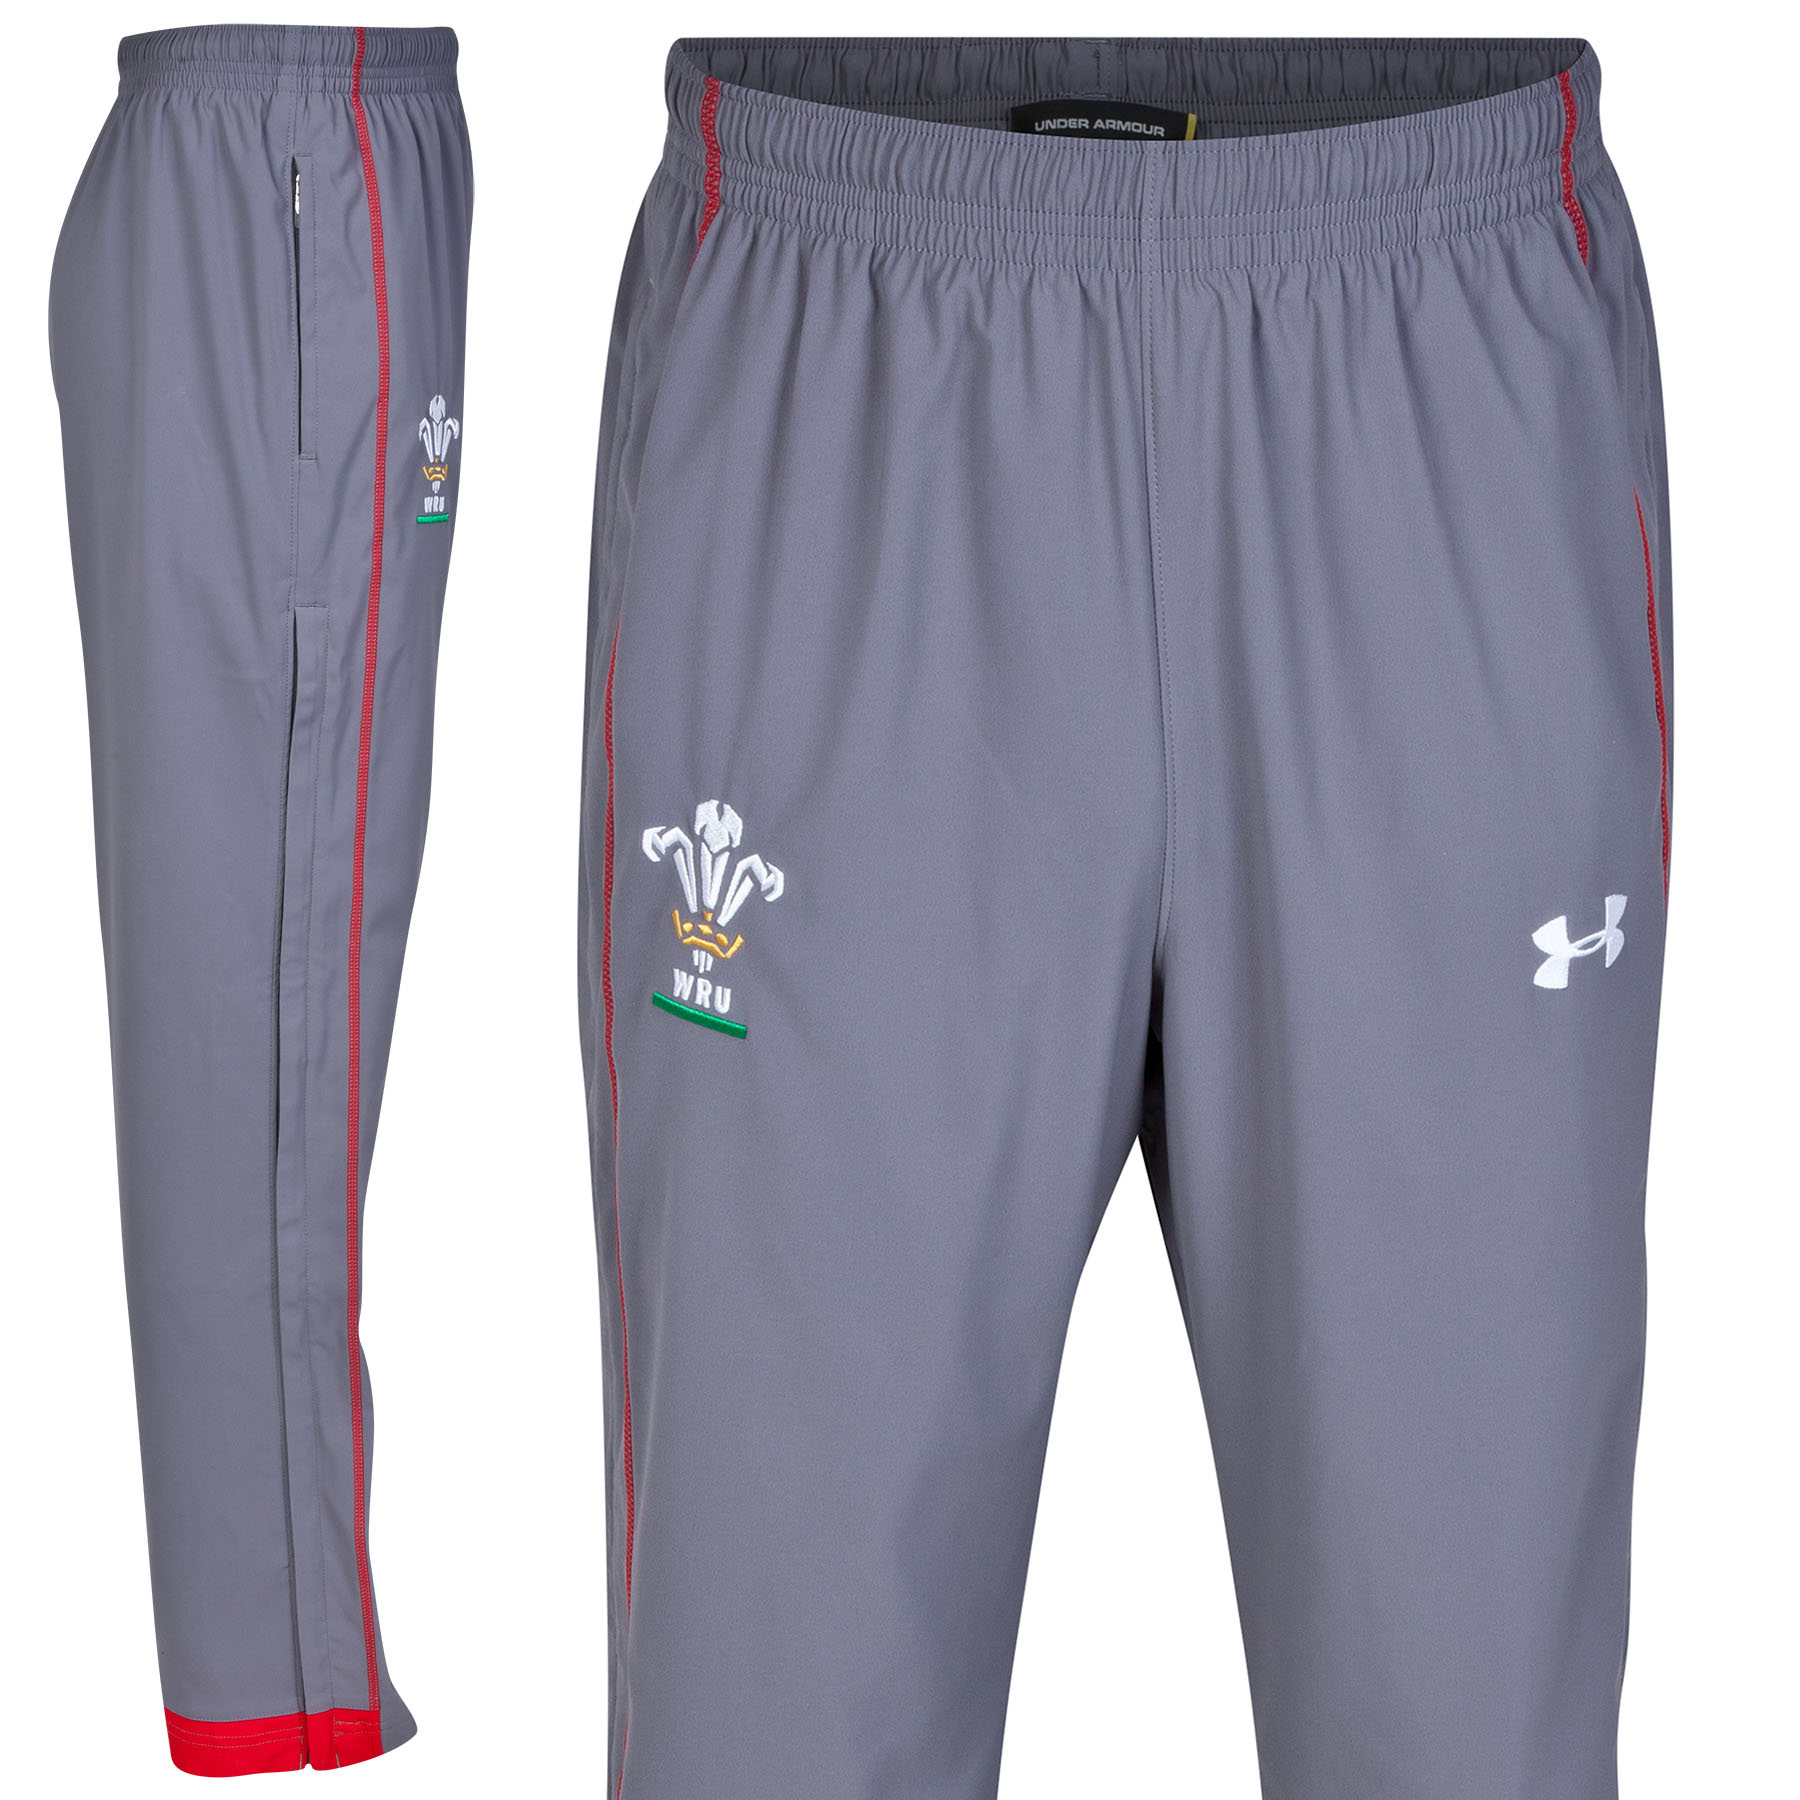 Wales Rugby Union Supporters Training Pants - Graphite/Red